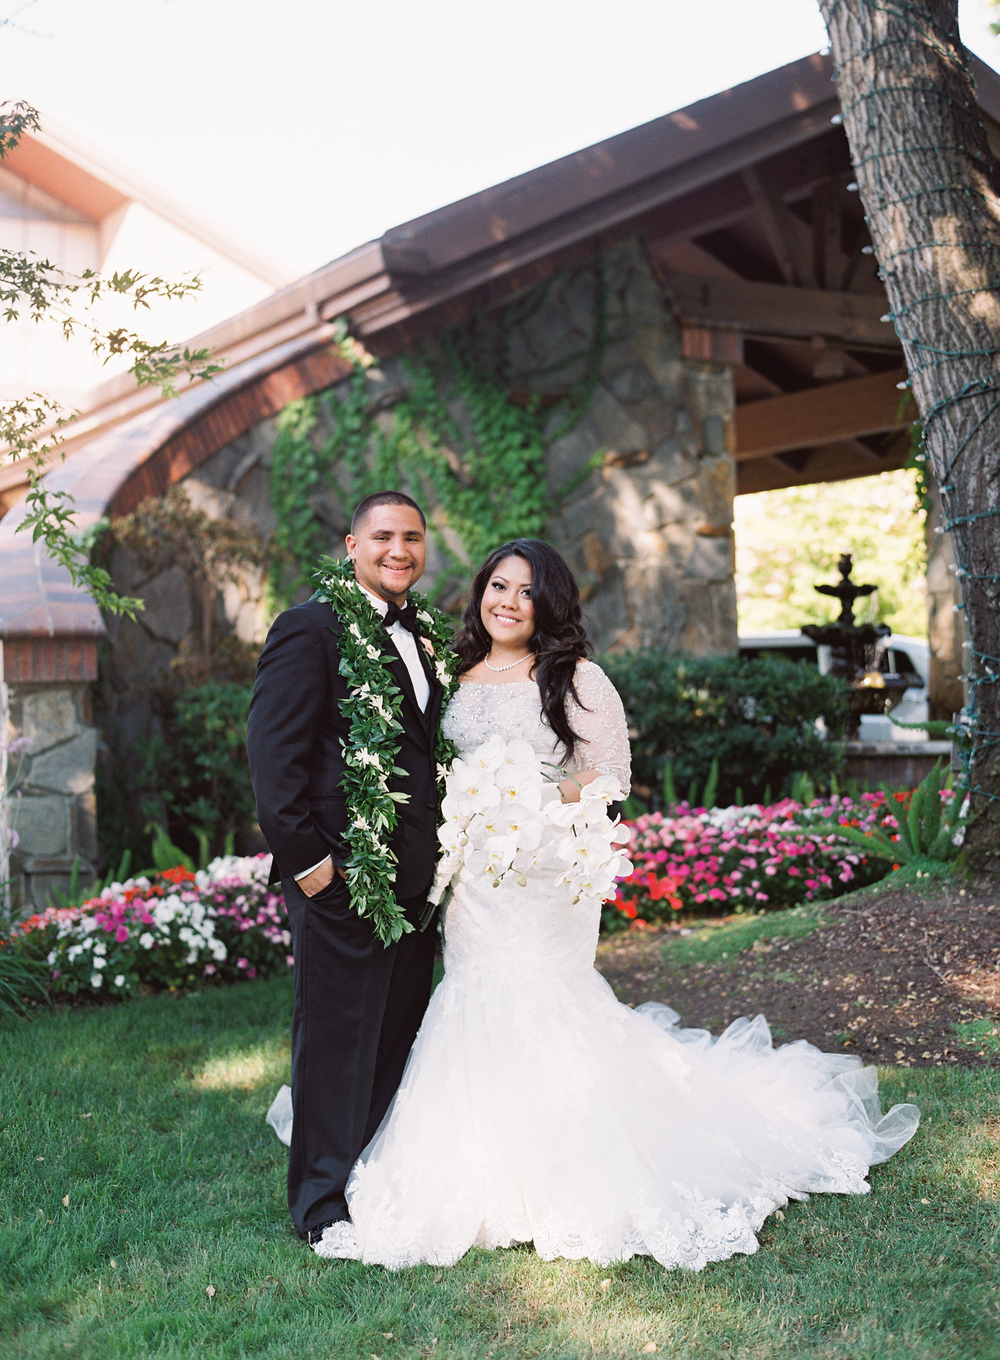 hawaiian-inspired-wedding-in-danville-california-006.jpg